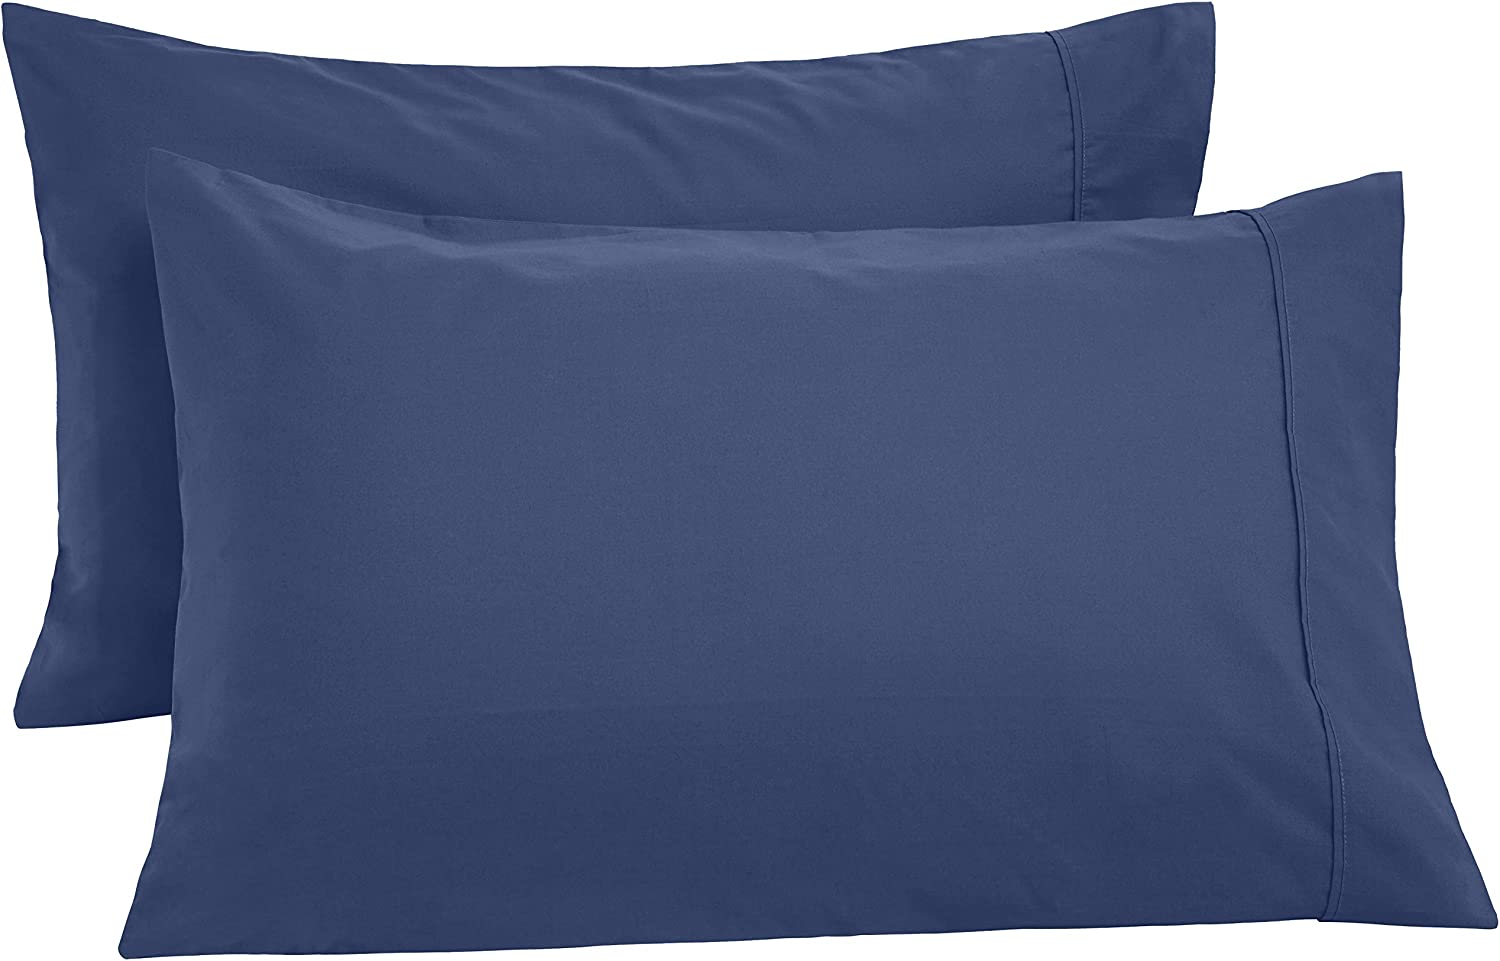 AmazonBasics Ultra-Soft Cotton Pillowcases, Breathable, Easy to Wash, Set of 2, Midnight Blue, King